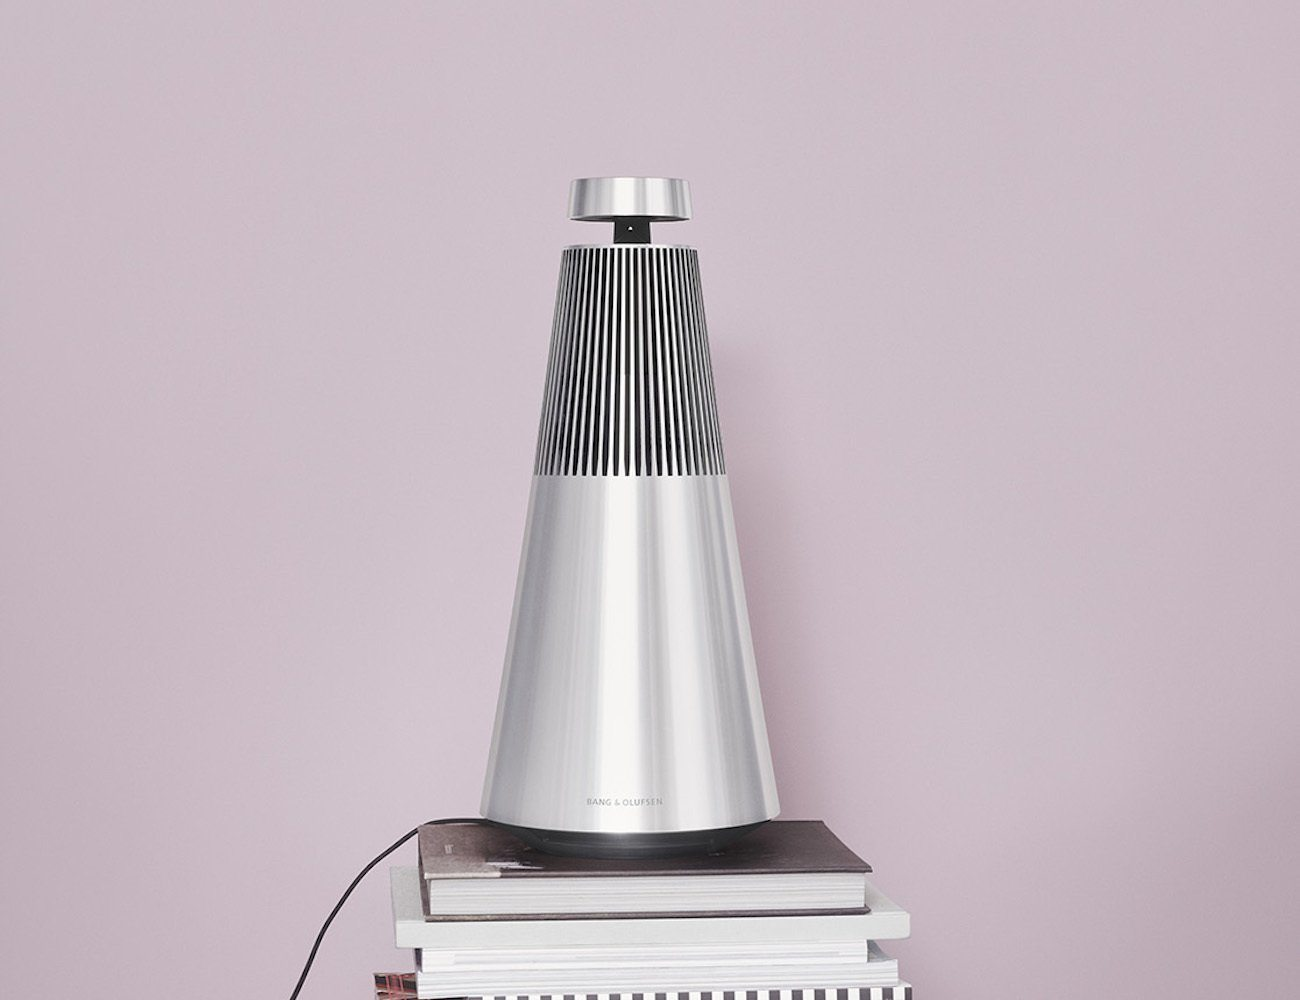 BeoSound new wireless speaker 01